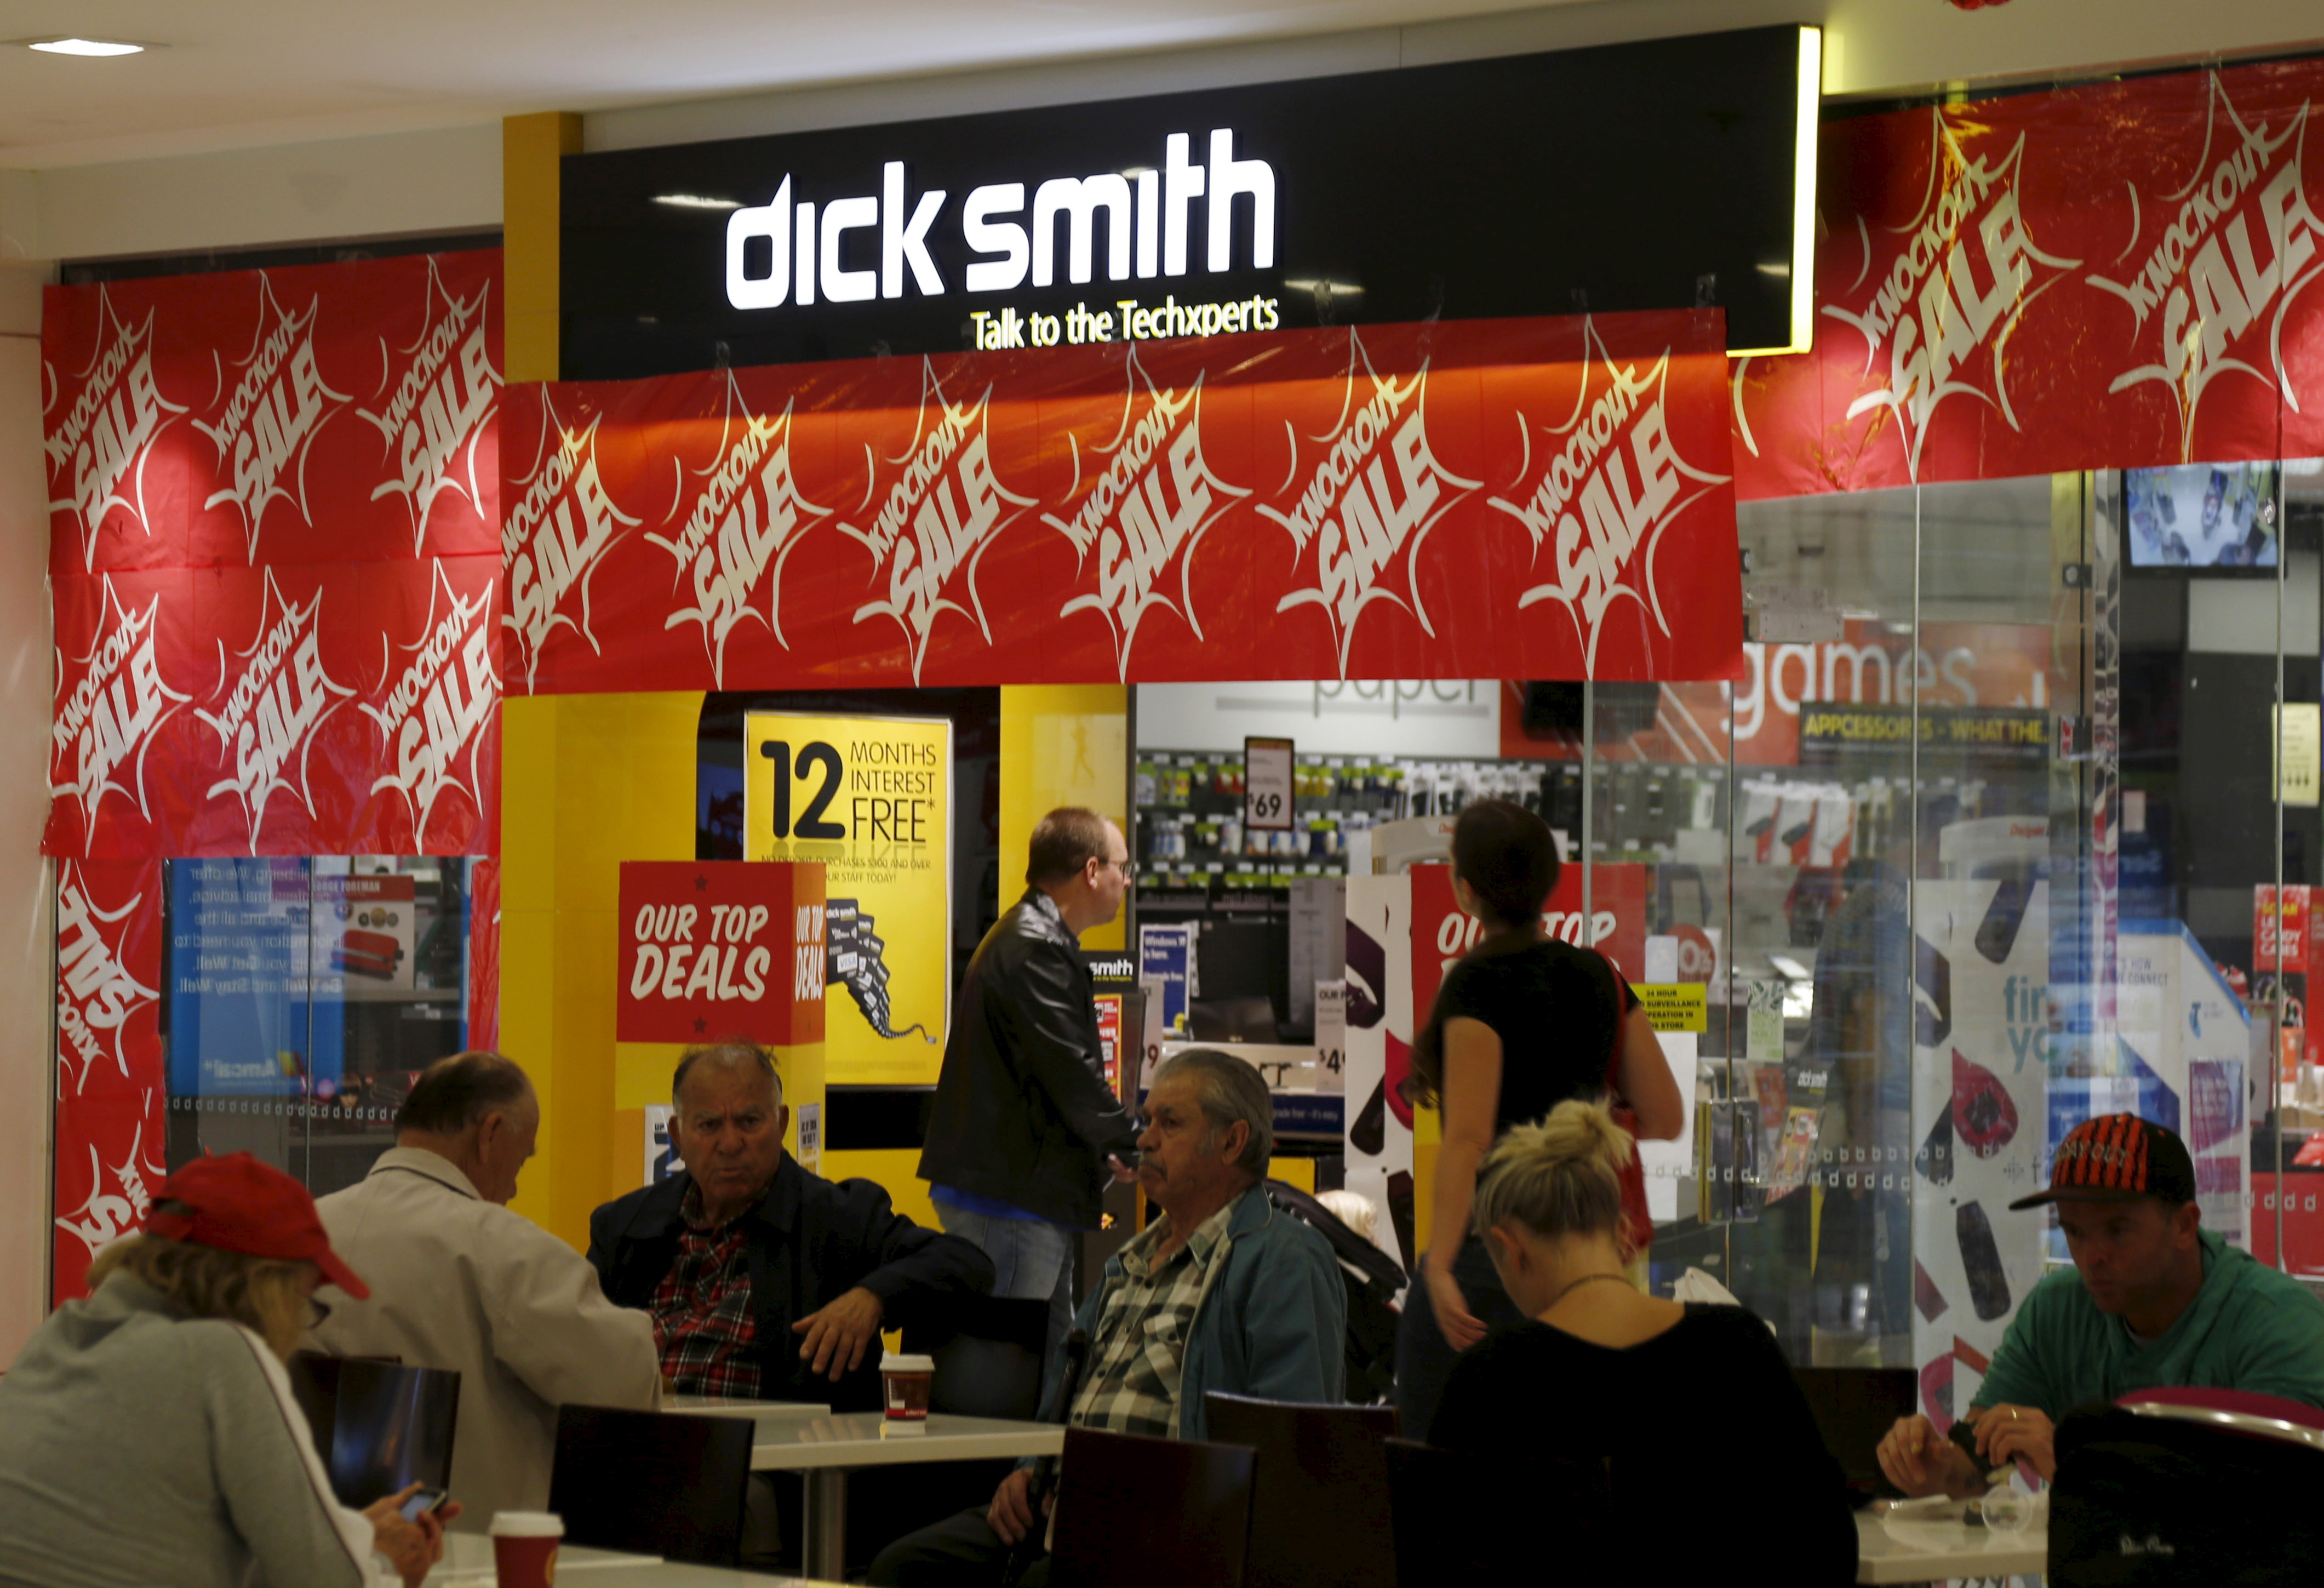 Dick smith shop online